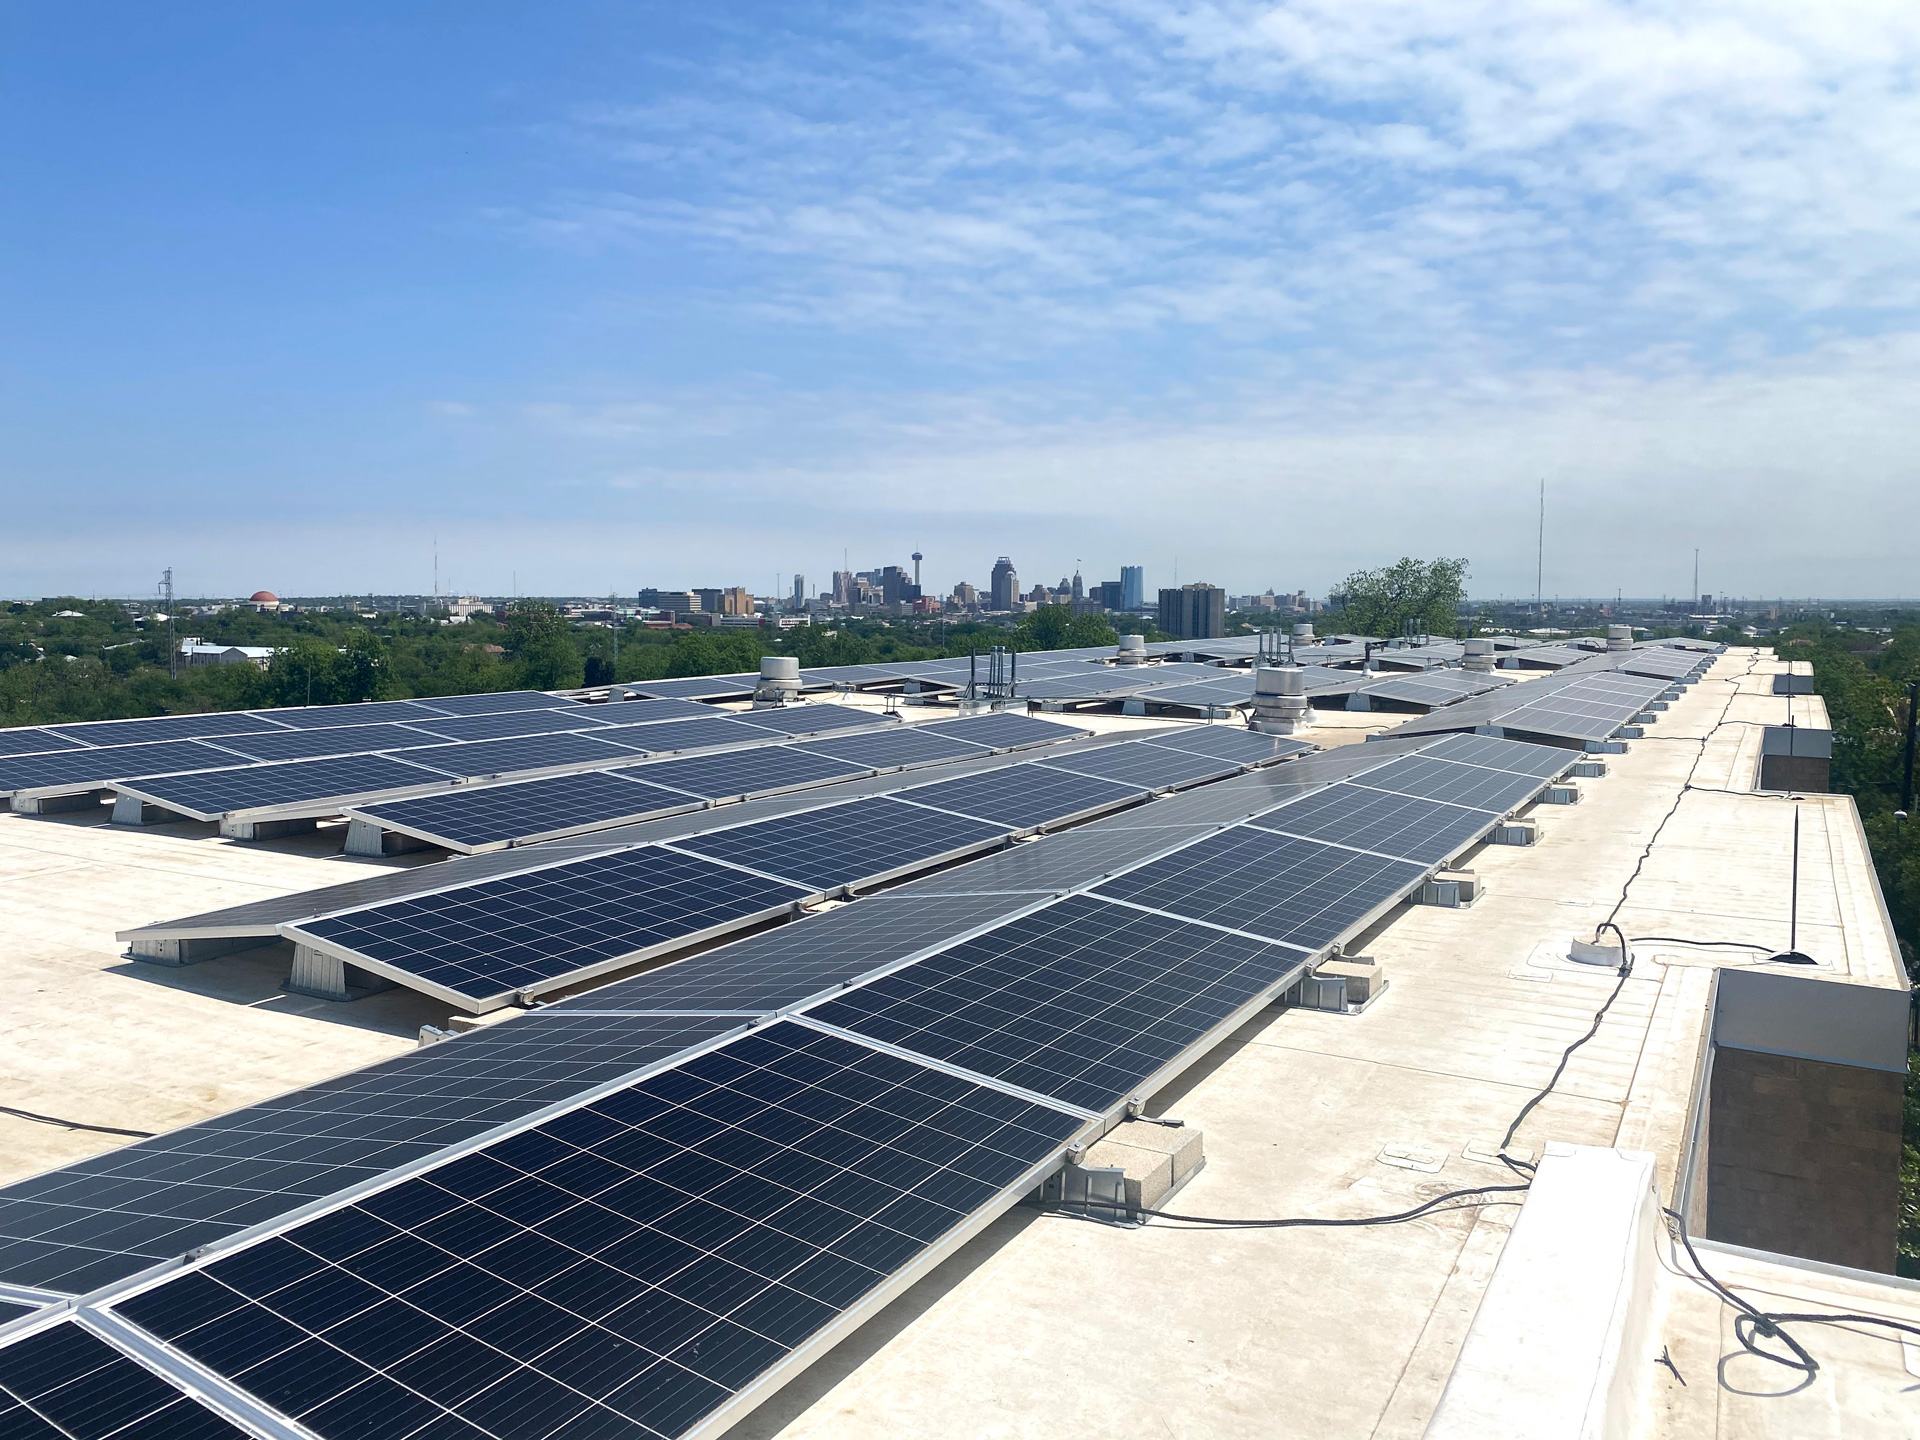 Solar Panels to Go Live at Public Housing Property Ahead of Earth Day